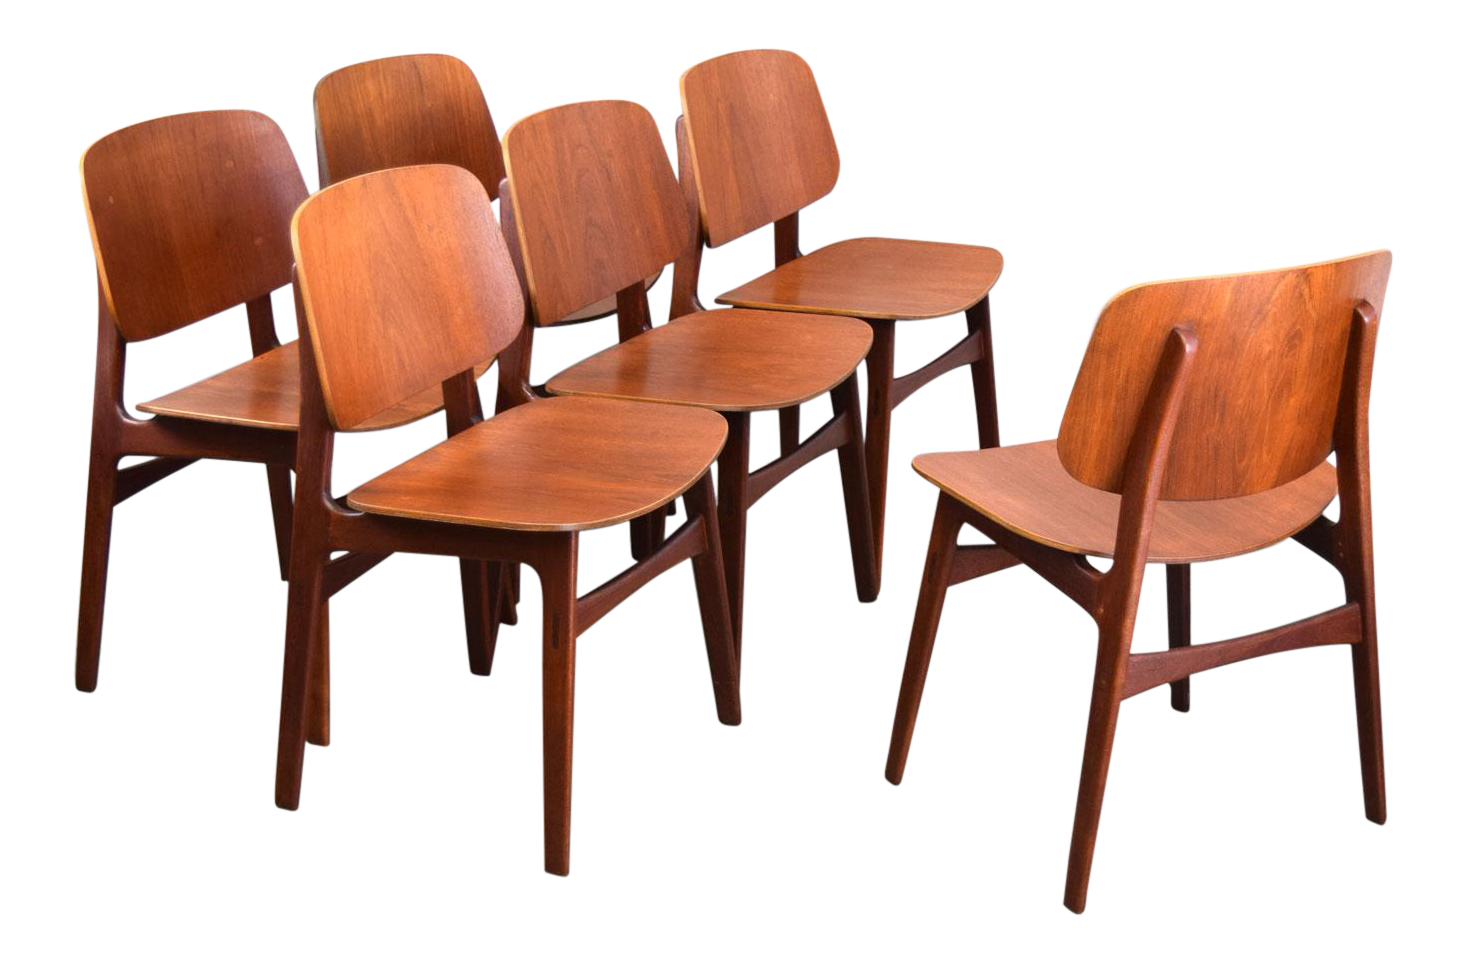 155 Søborg Mobelfabrik Teak Dining Chairs   Set/6